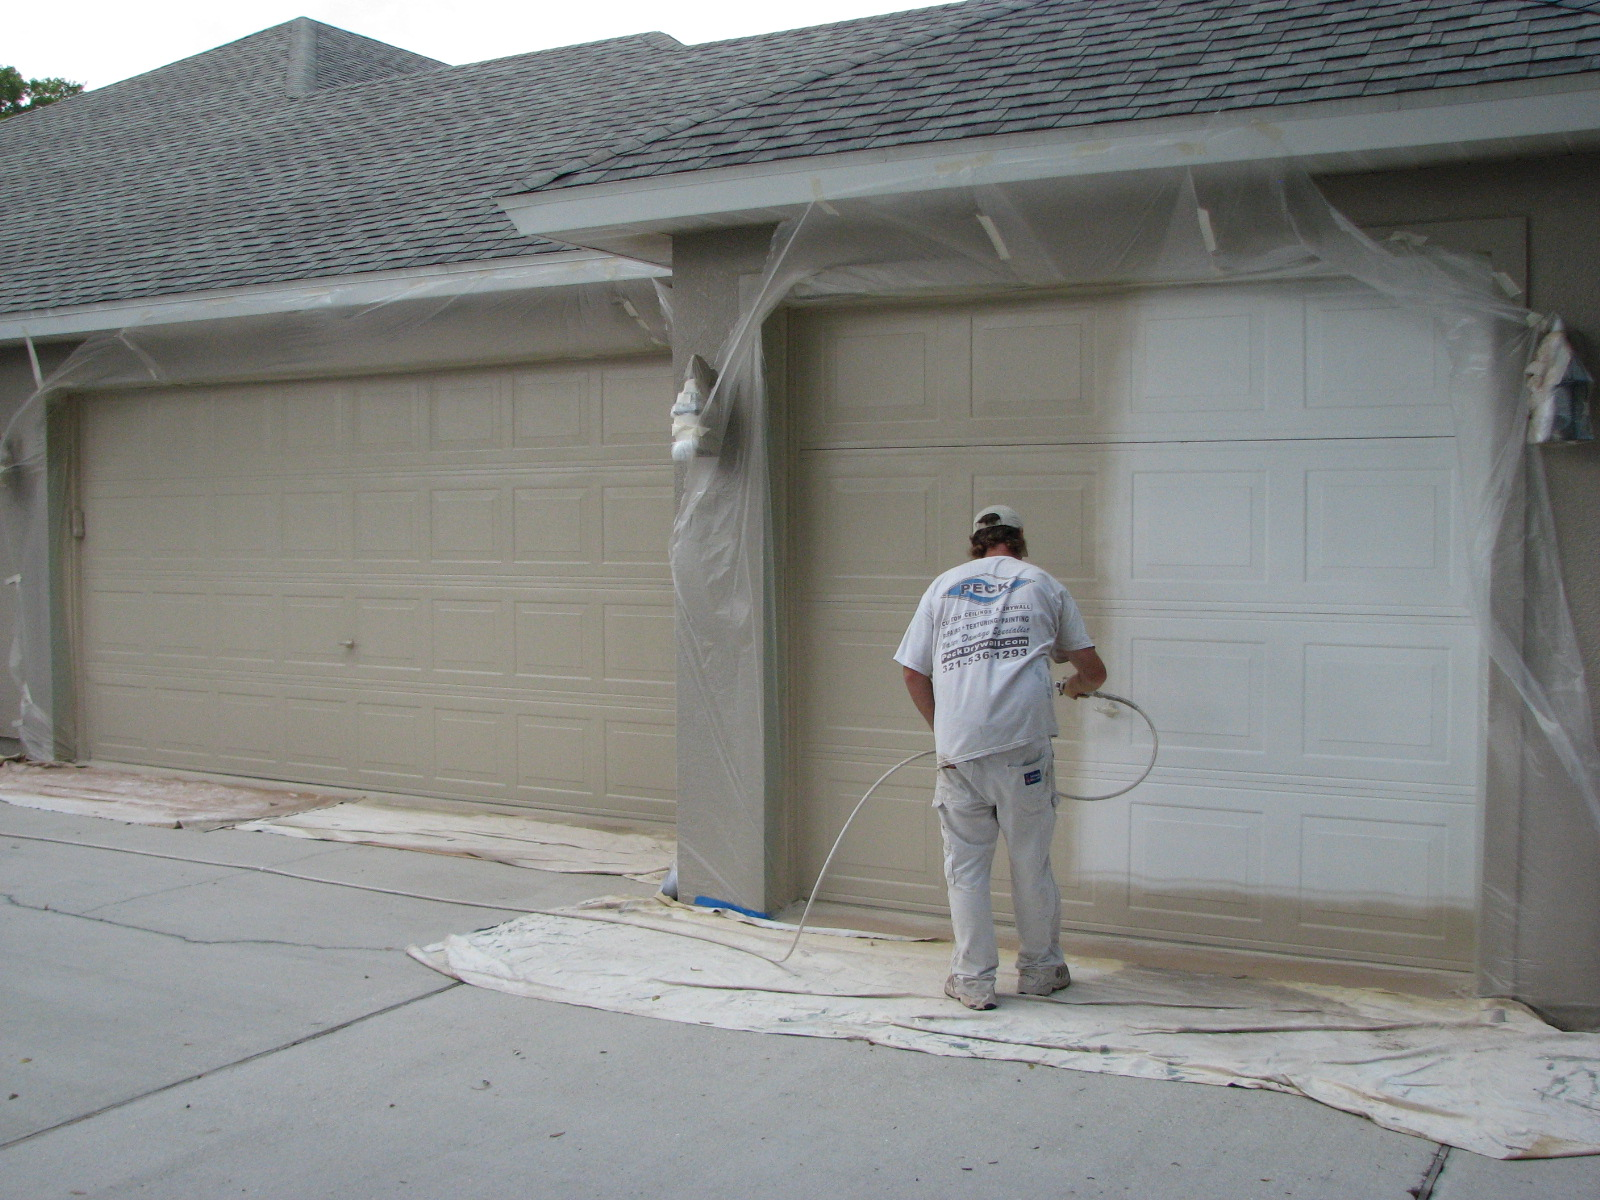 Painter in melbourne fl exterior house painting melbourne florida - Exterior home painting pictures paint ...